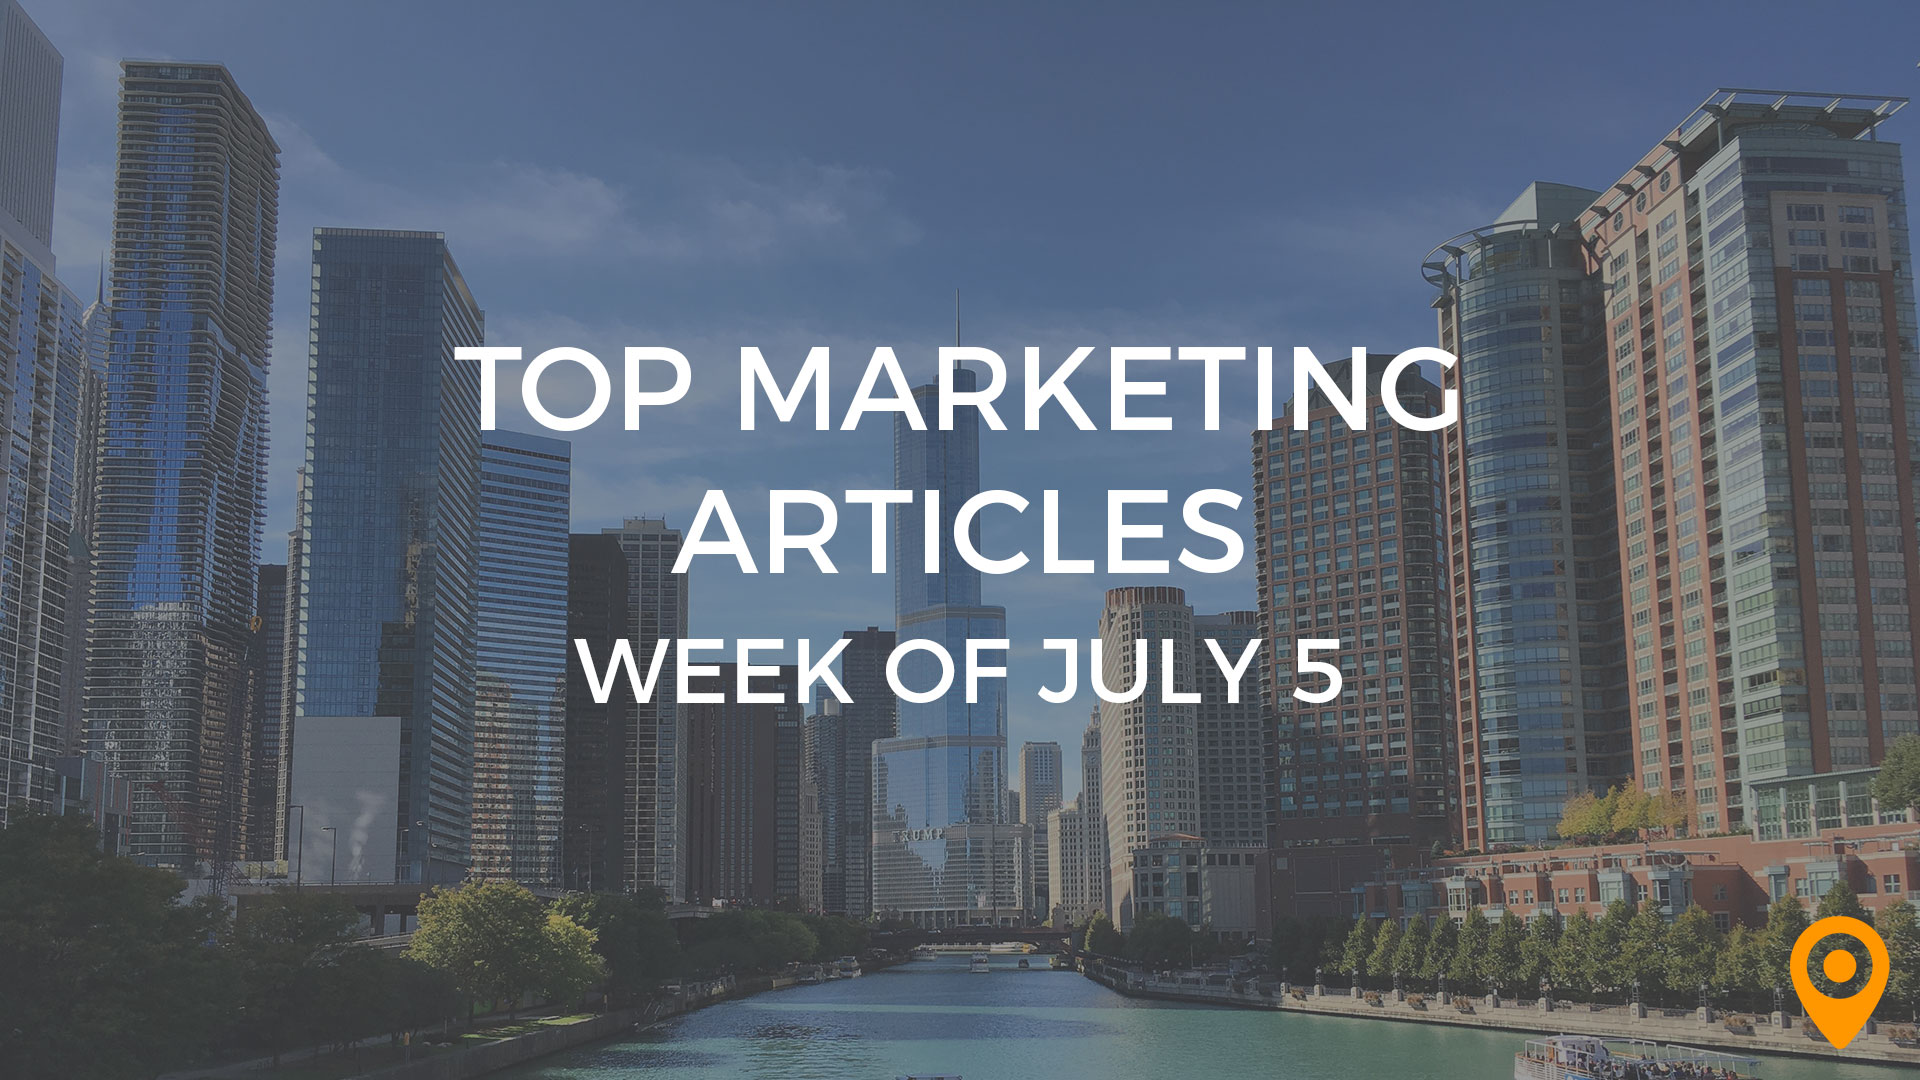 Top Marketing Articles Week of July 5 2019